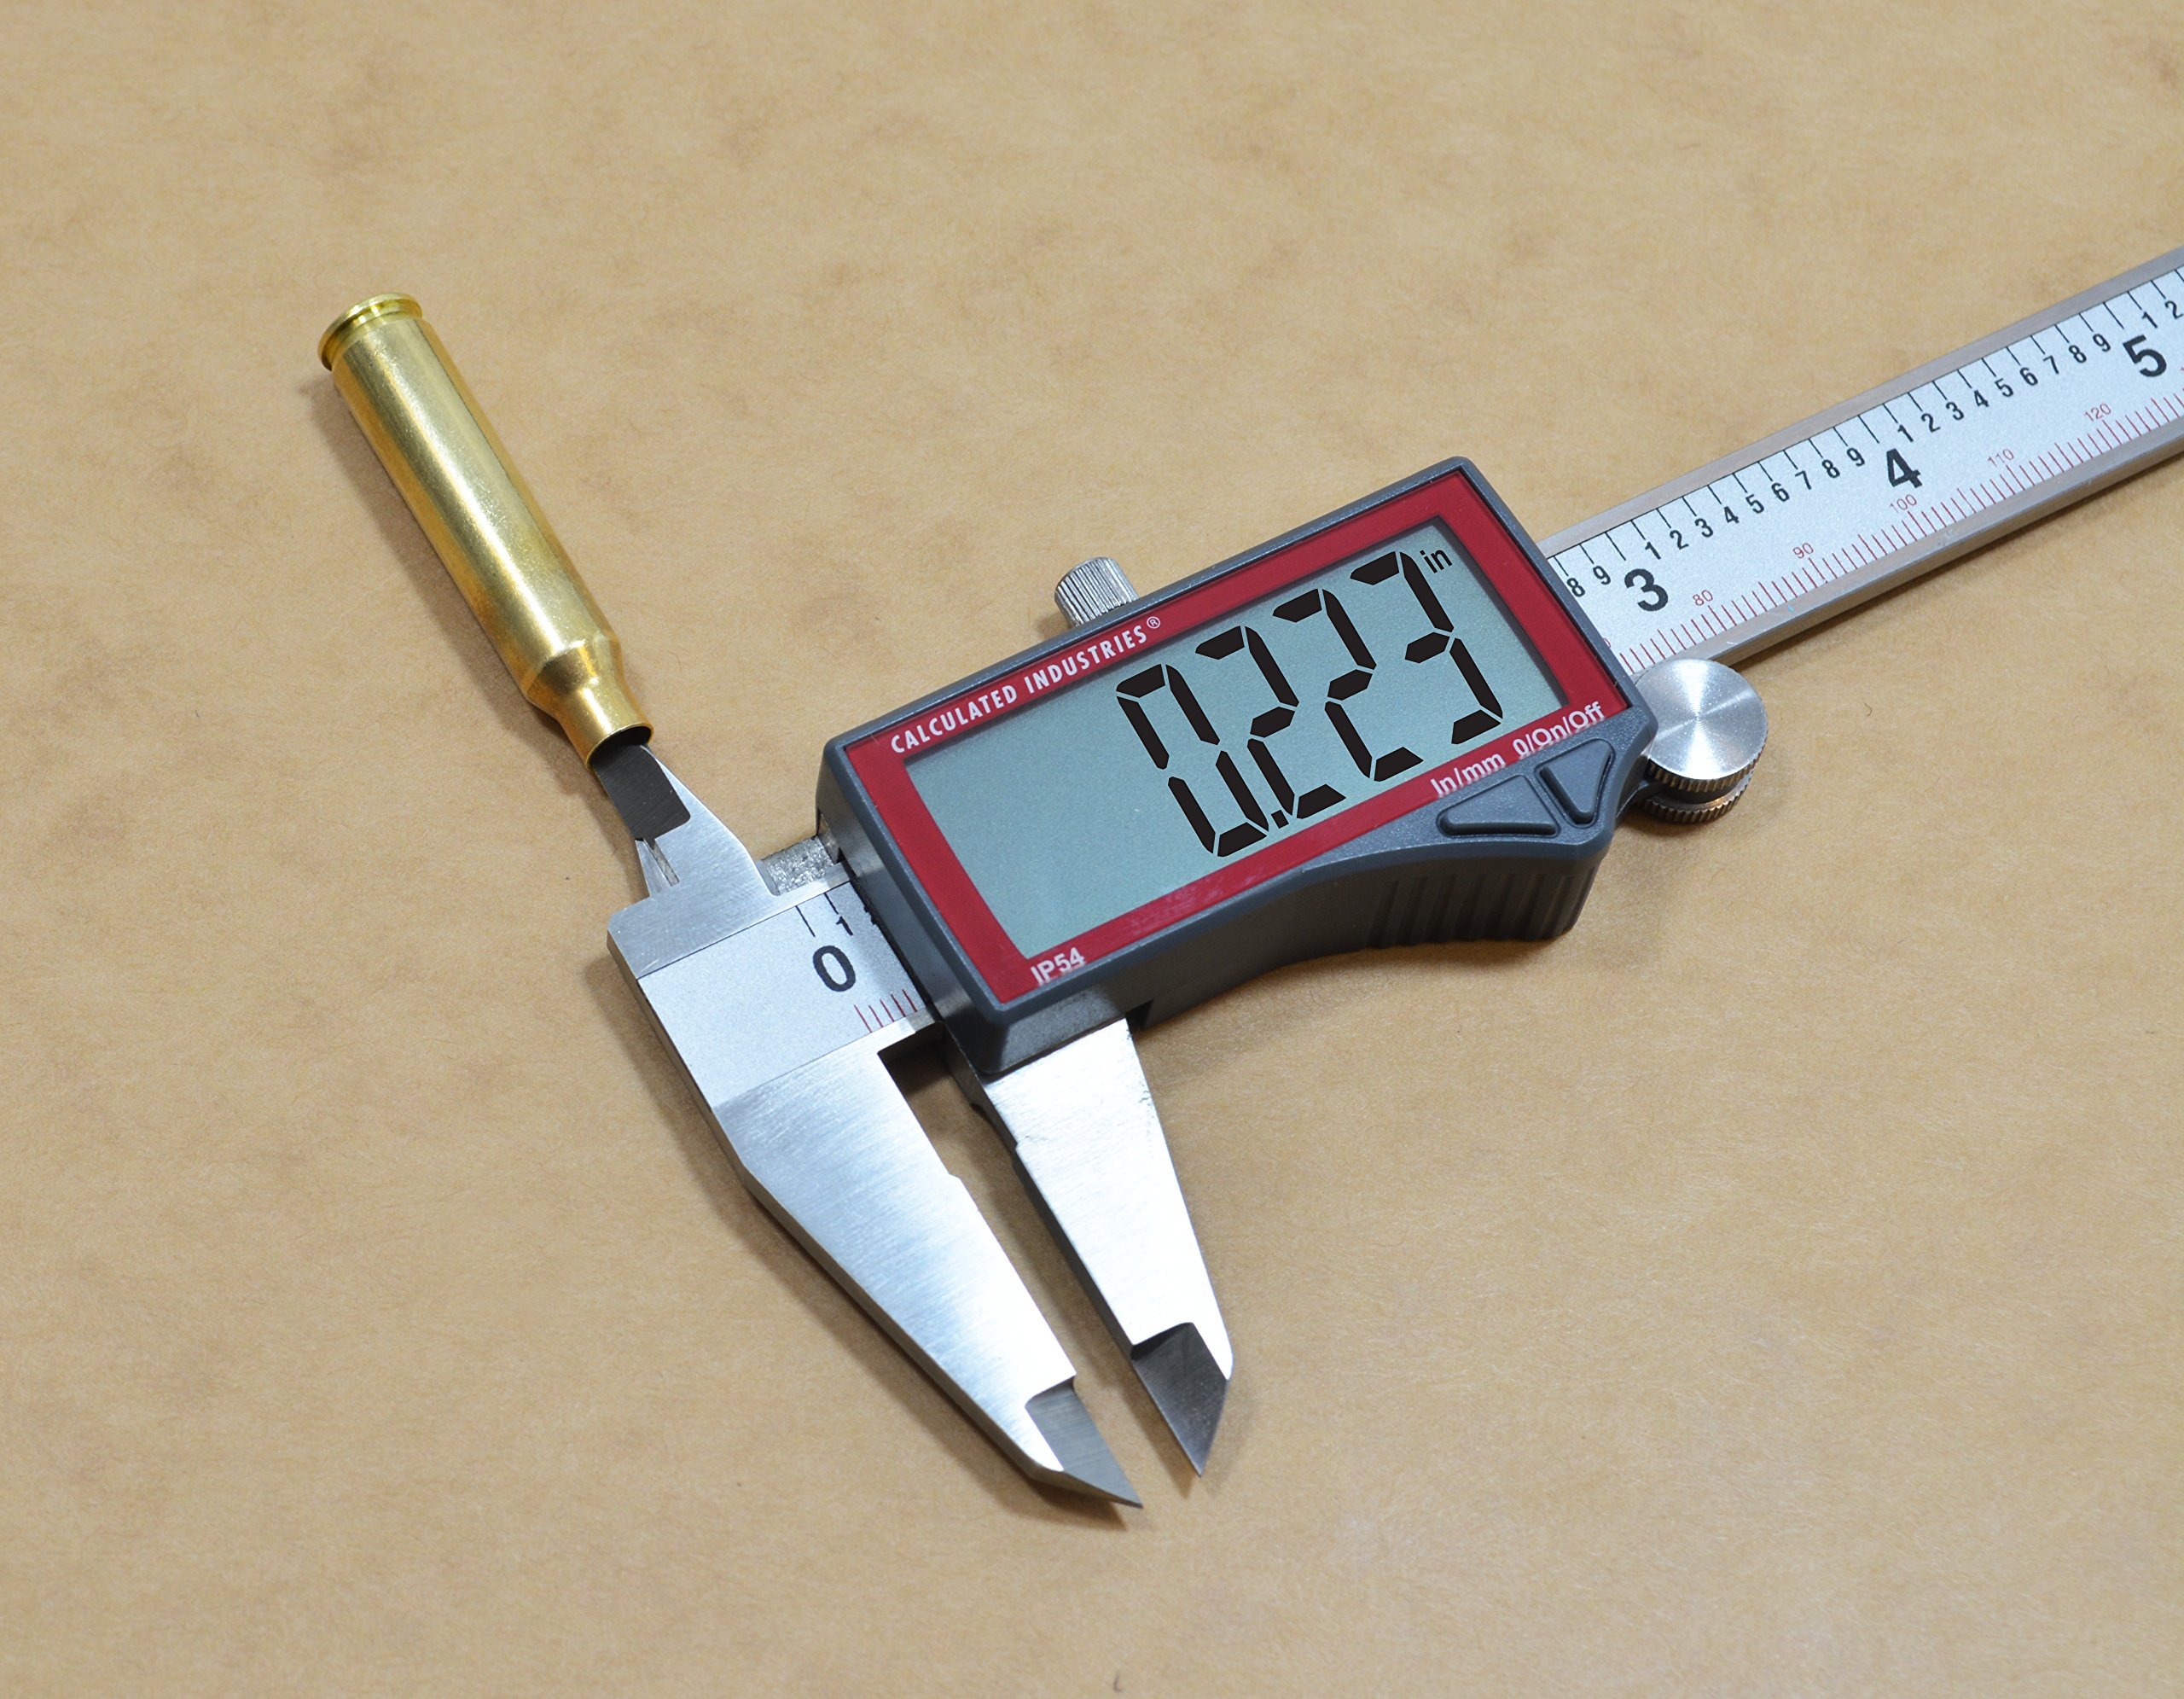 Calculated Industries 7418 AccuMASTER Electronic Digital Vernier Caliper | Metric/SAE Inch to Millimeter Conversion | Tool Measures 0-6 Inches/150mm | Stainless Steel | Largest Display Digits |IP54 by Calculated Industries (Image #13)